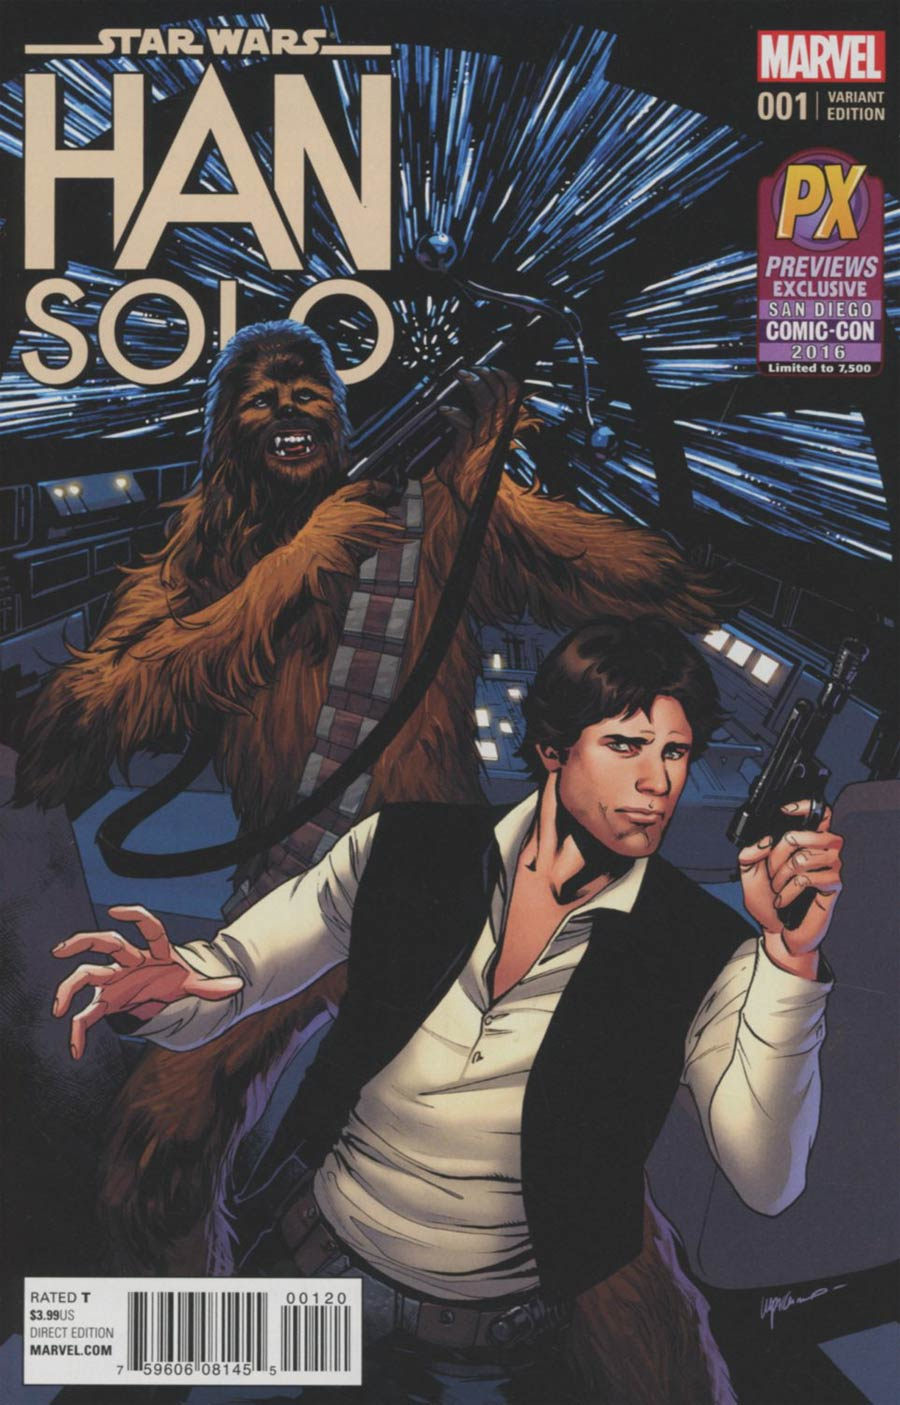 Star Wars Han Solo #1 Cover I SDCC 2016 Exclusive Emanuela Lupacchino Variant Cover